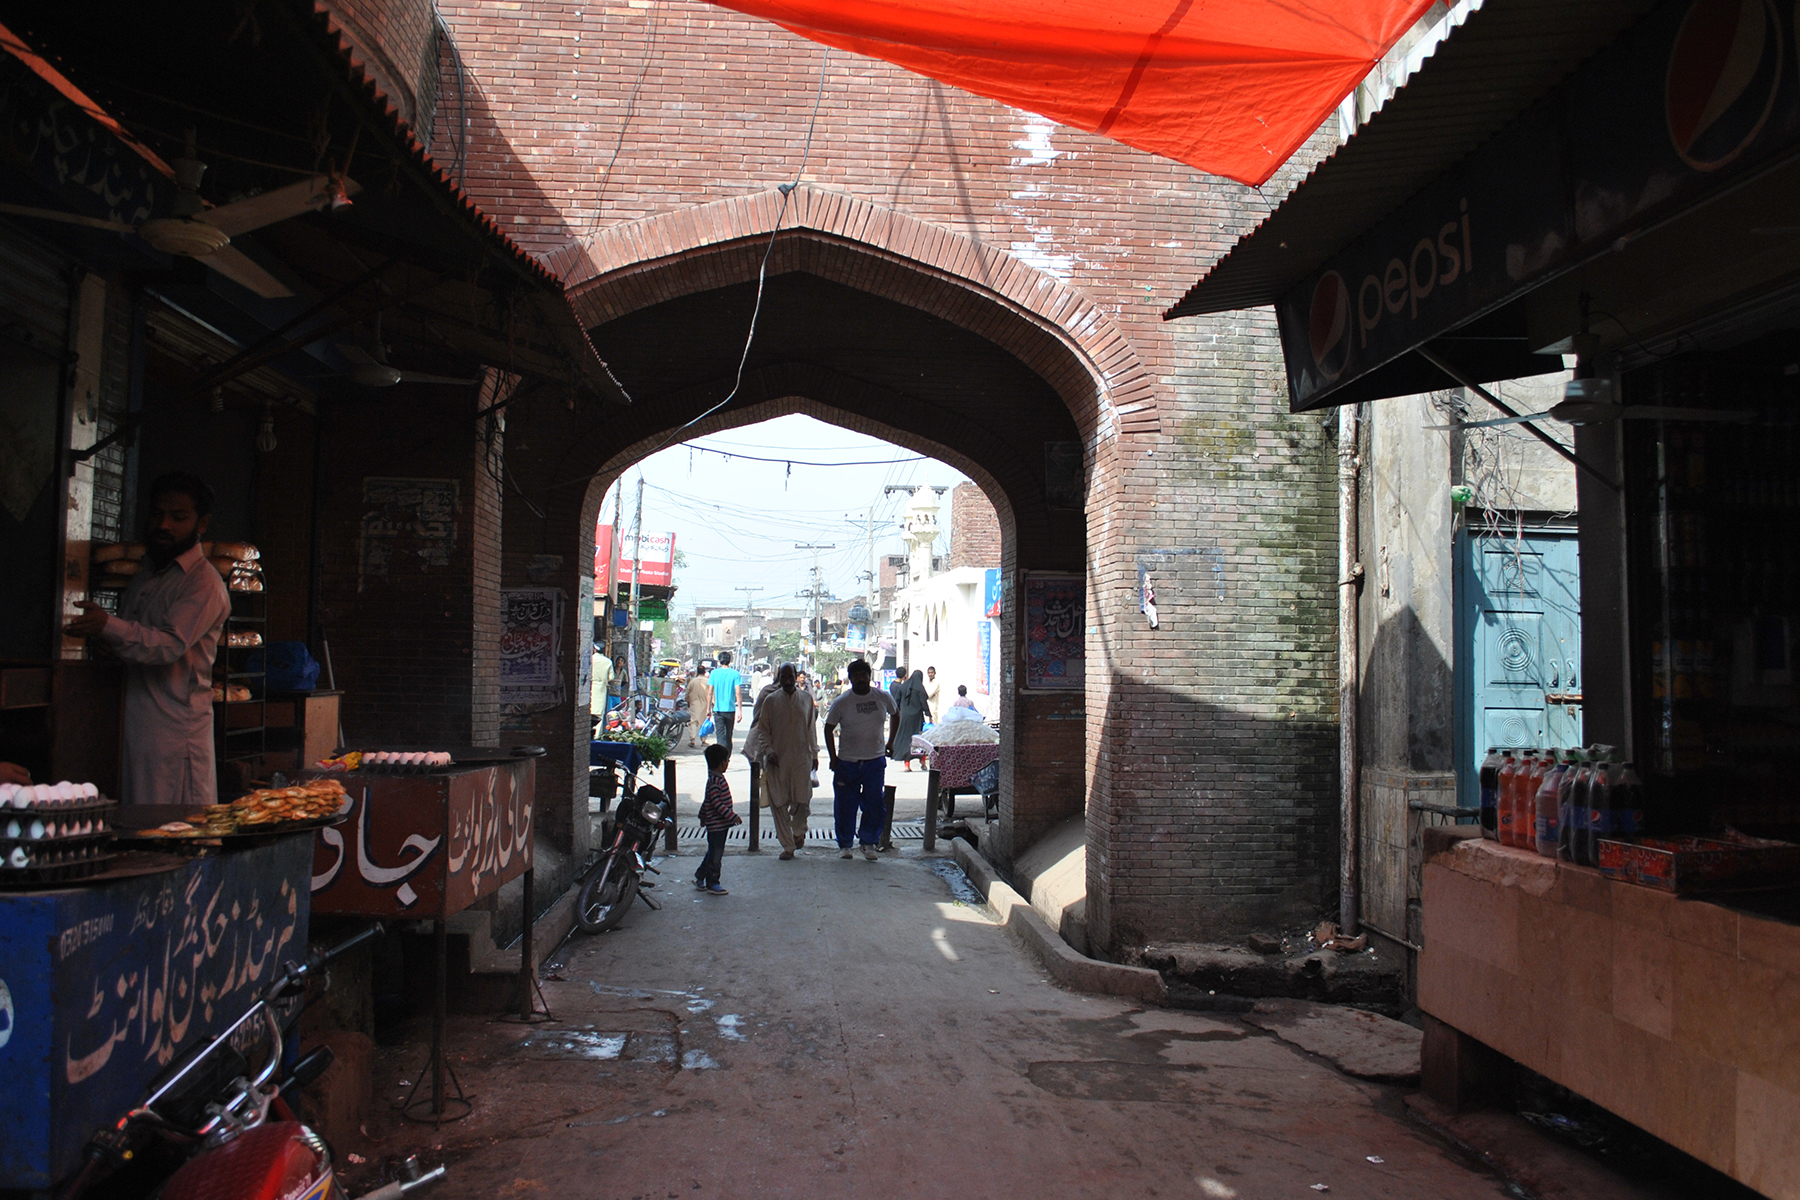 The gate leads into a narrow crowded main market of Eminabad.